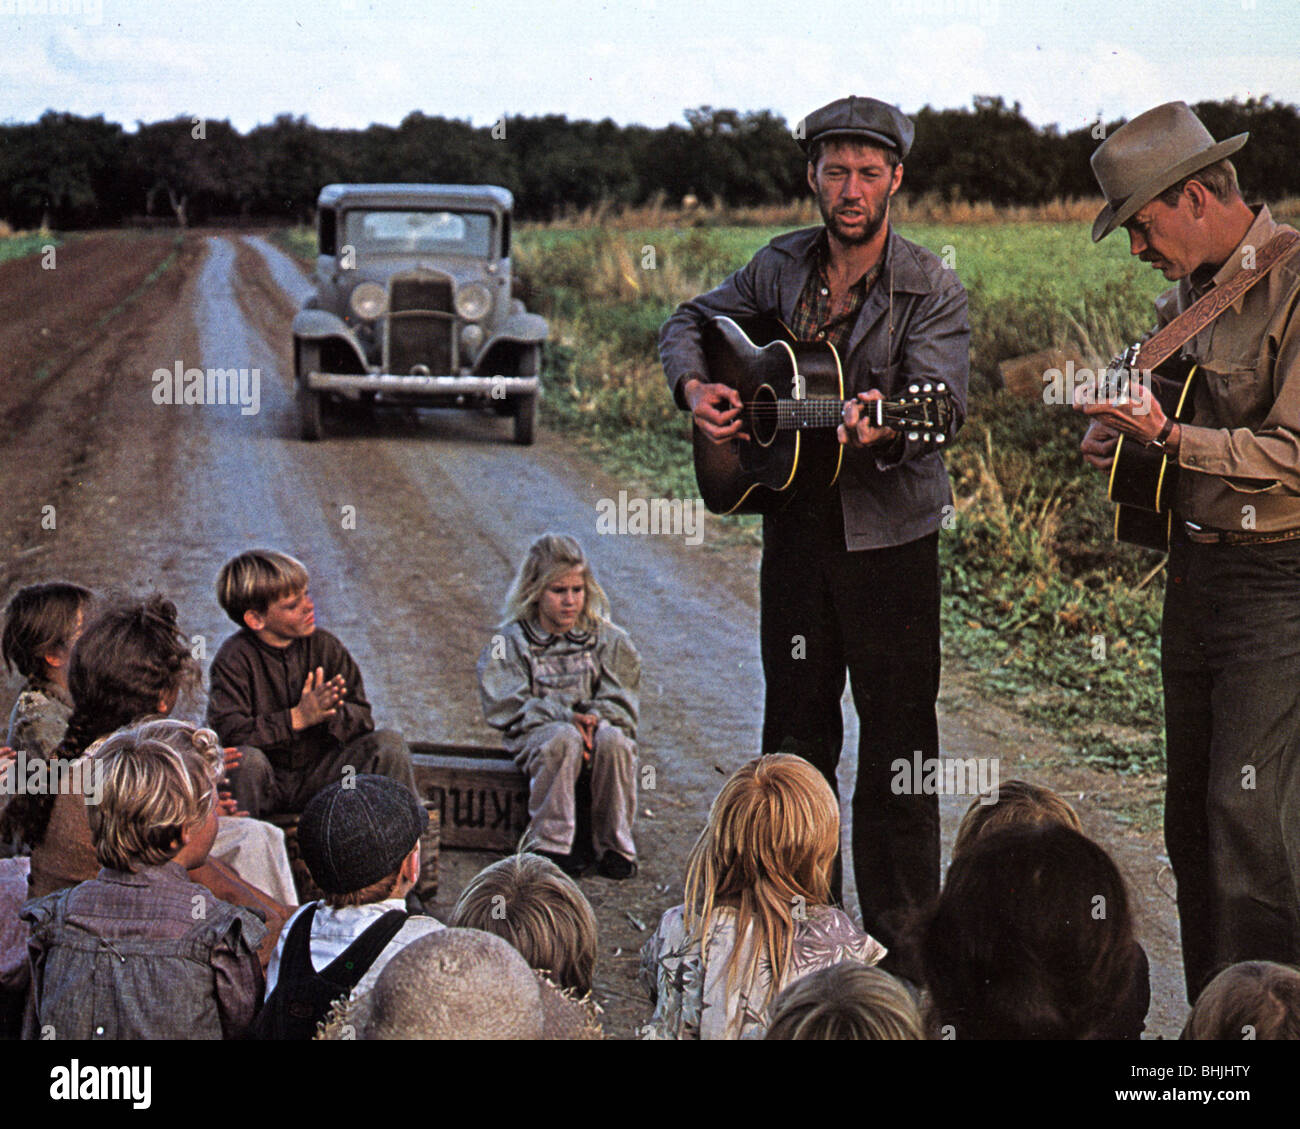 BOUND FOR GLORY  1976 UA film with David Carradine (centre) as Woody Guthrie and Ronny Cox at right - Stock Image